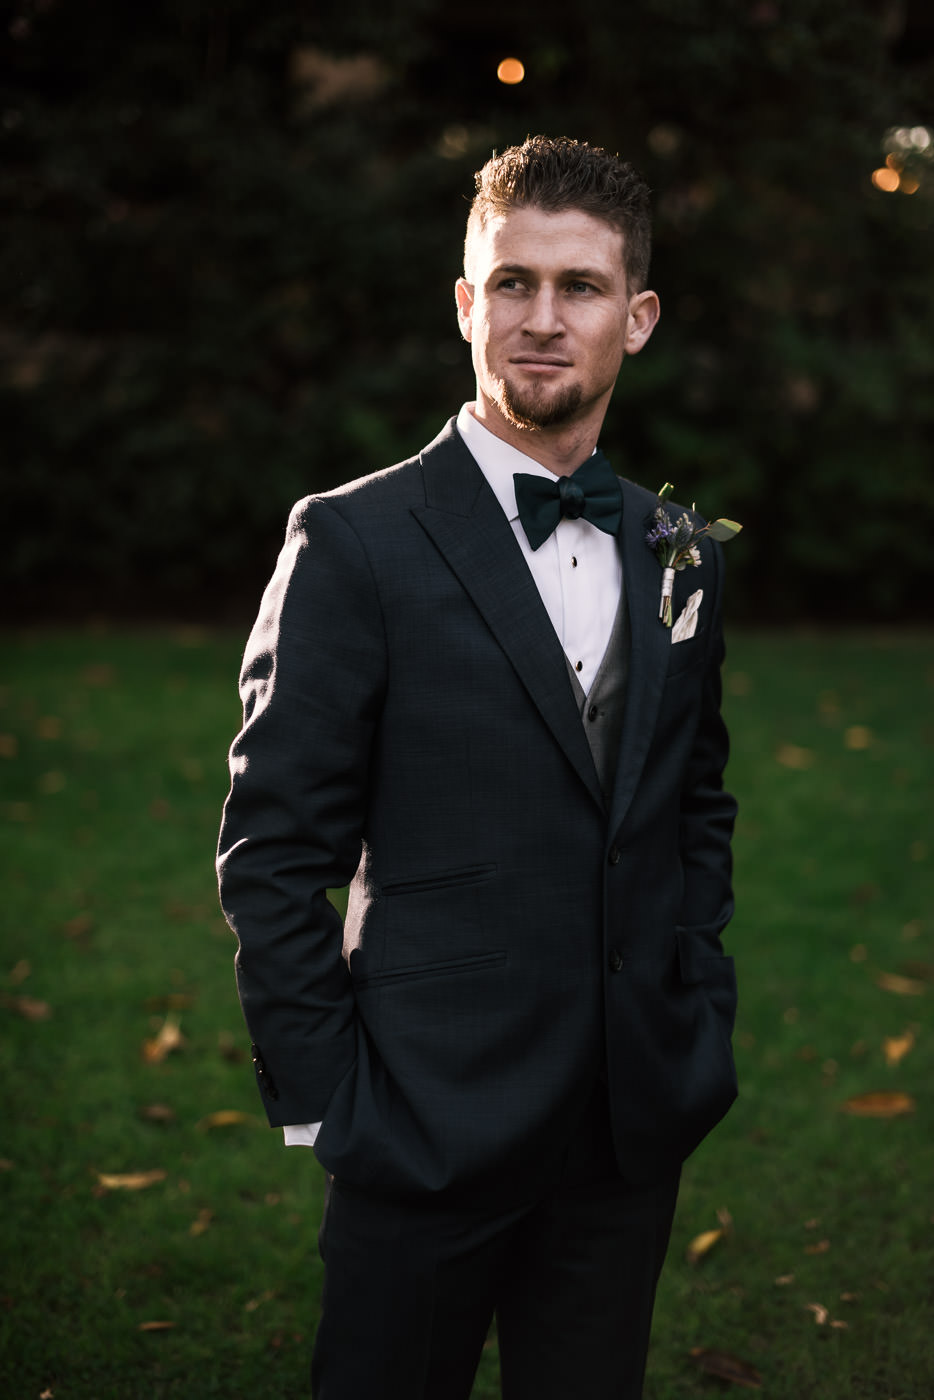 Wedding photographer captures a handsome picture of a groom in Pasadena.